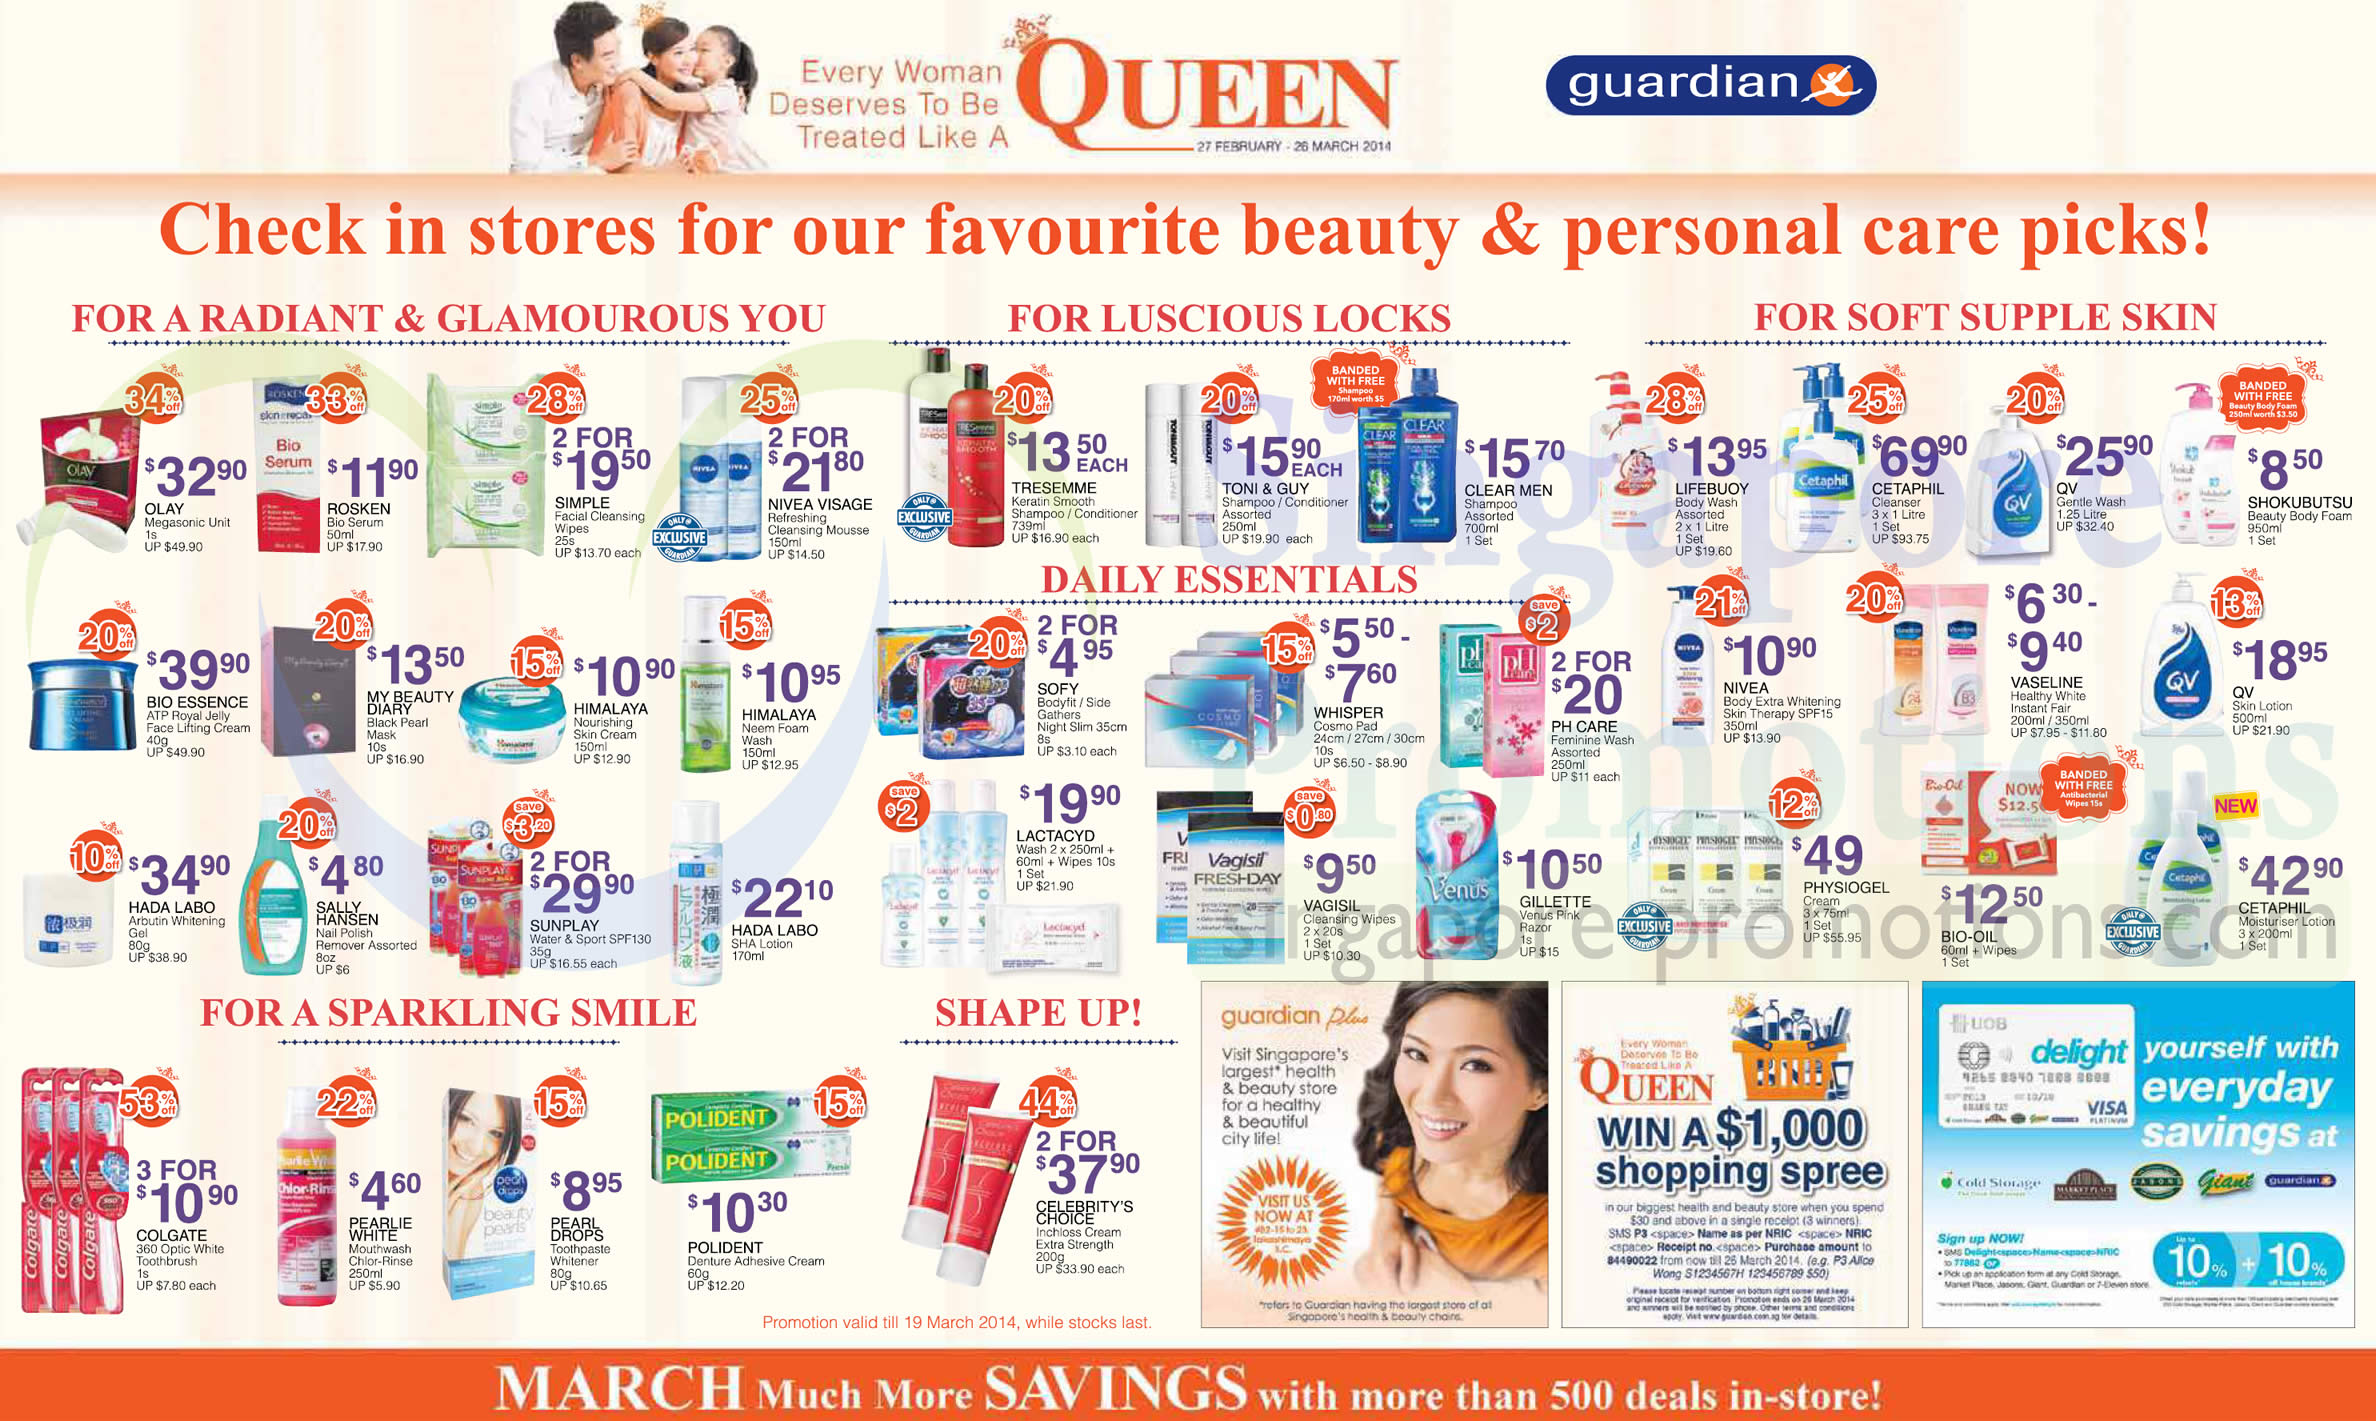 Beauty, Cosmetics, Personal Care, Bio-Essence, Hada Labo, Sunplay, Olay, Celebritys Choice, Cetaphil, Physiogel